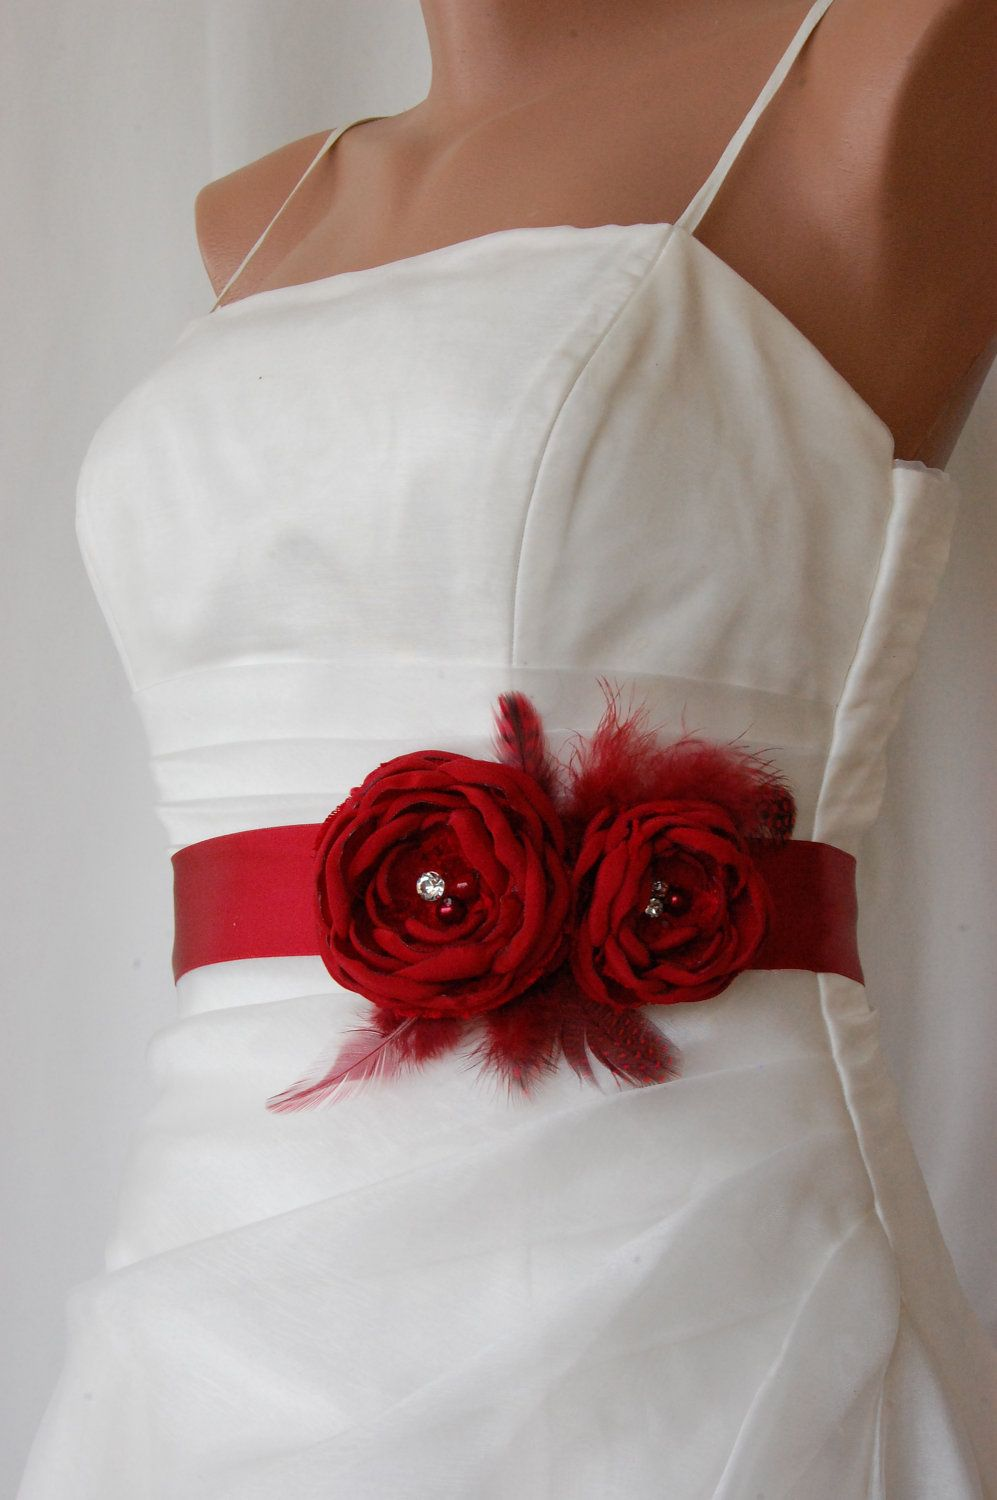 Cute Flower Belt If You Wanted To Do White Dresses With Colorful Accents Could Probably Be Done With Or Without F Feather Wedding Red Wedding Flowers Wedding [ 1500 x 997 Pixel ]